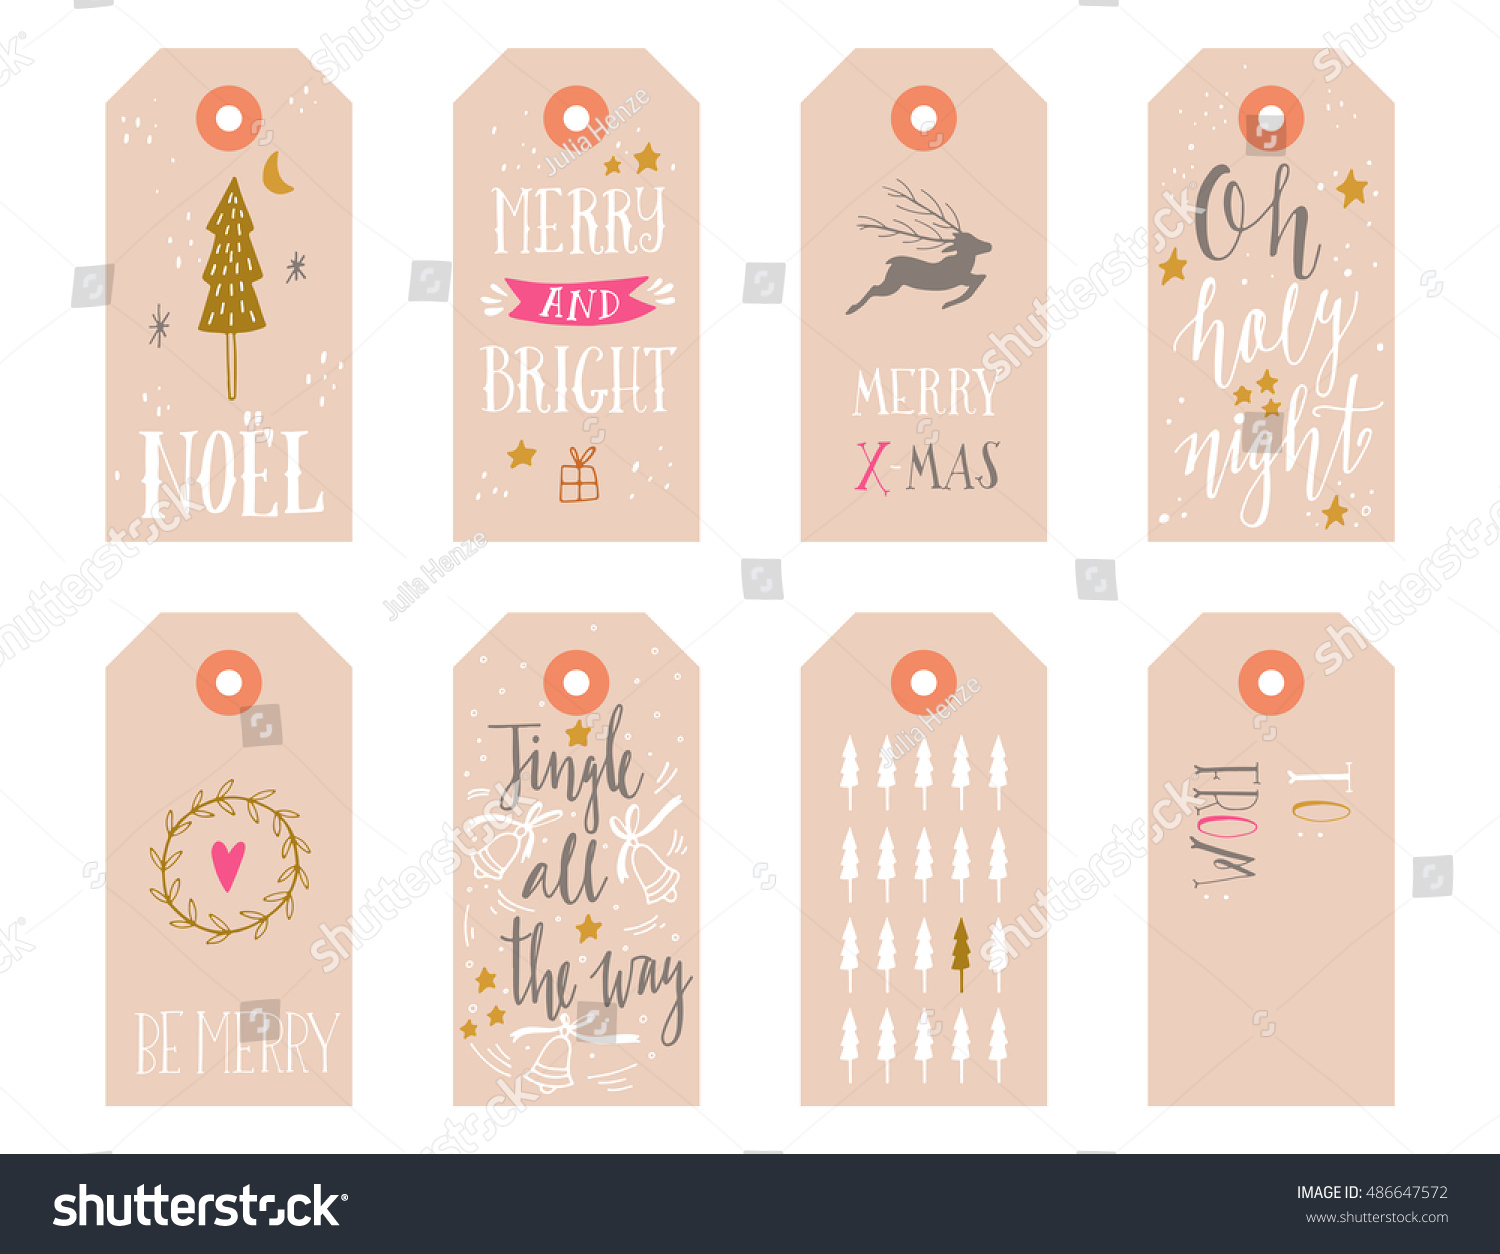 Hand drawn Christmas holiday gift tags collection with calligraphy hand lettering decoration elements and doodles Set of 8 printable labels on white background